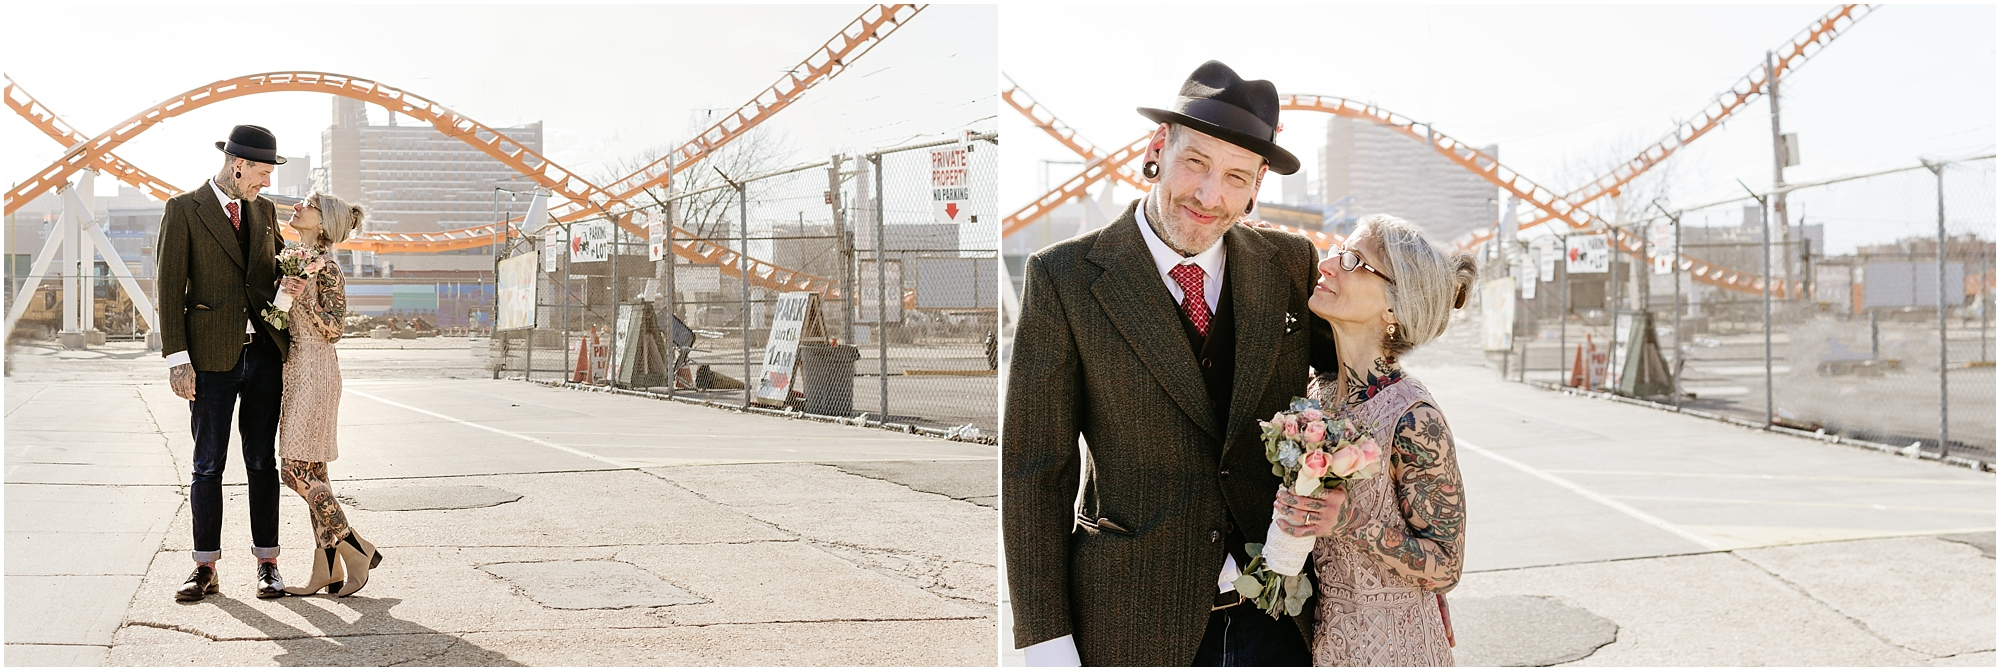 Lisa&Dan_Coney_Island_NYC_Elopement_Jeanette Joy Photography_April 2018_0041.jpg